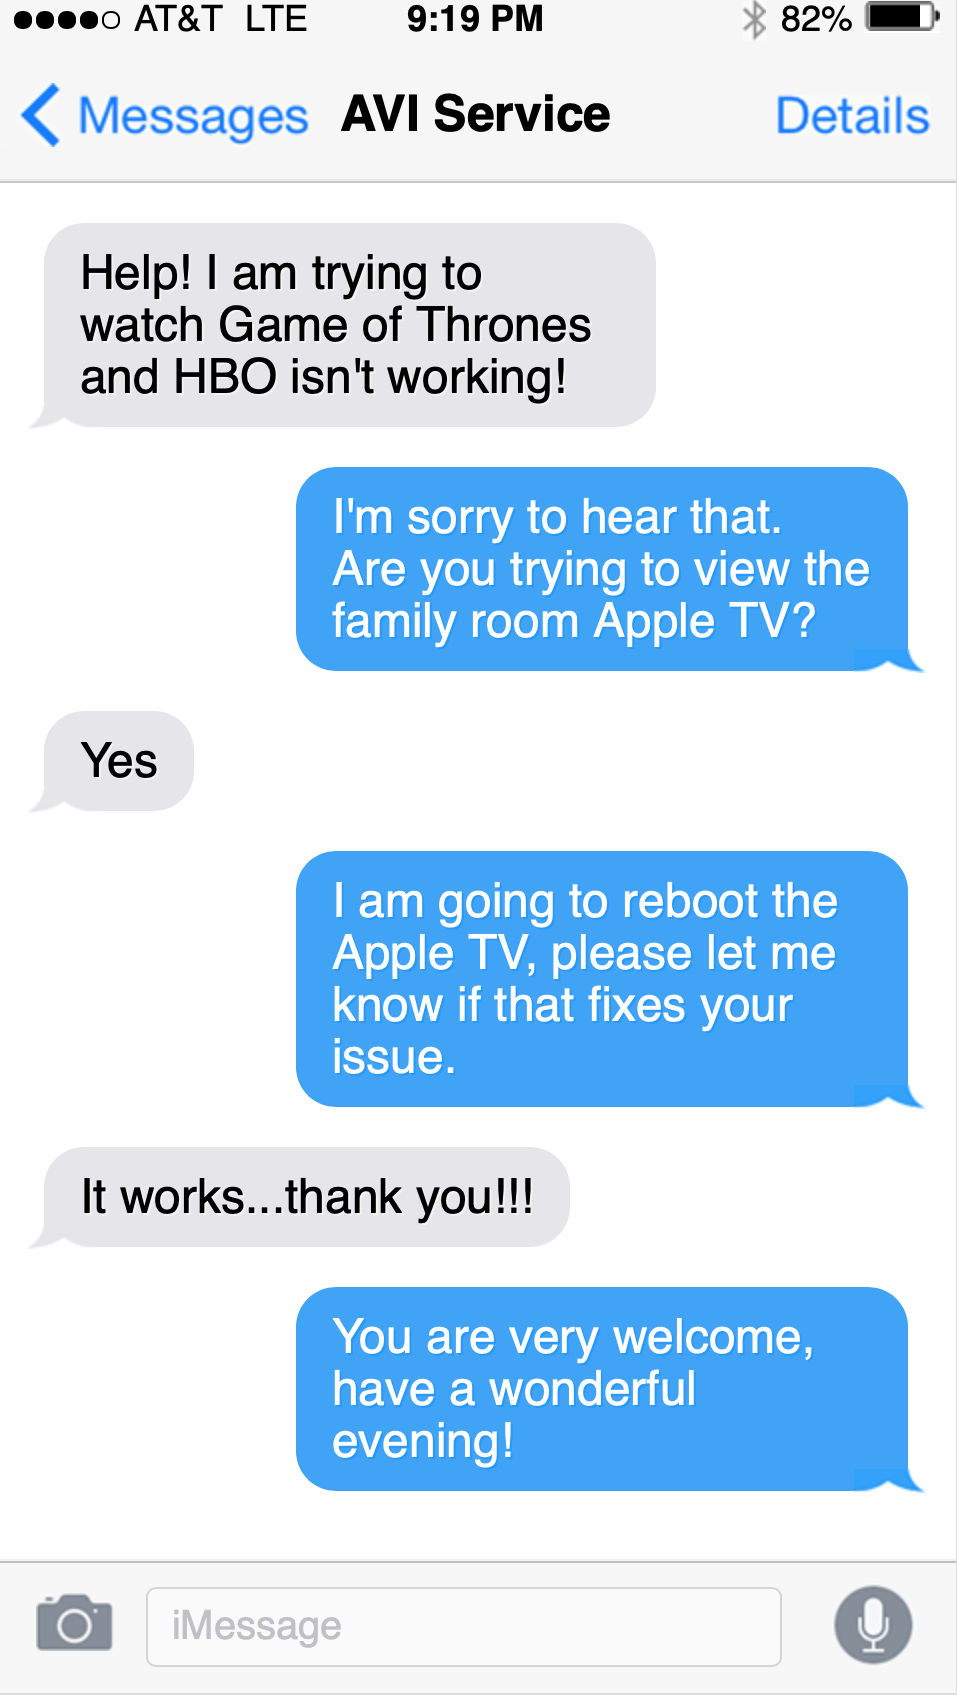 24/7 support in iOS text message for Dallas smart home with Control4, Savant, and ELAN